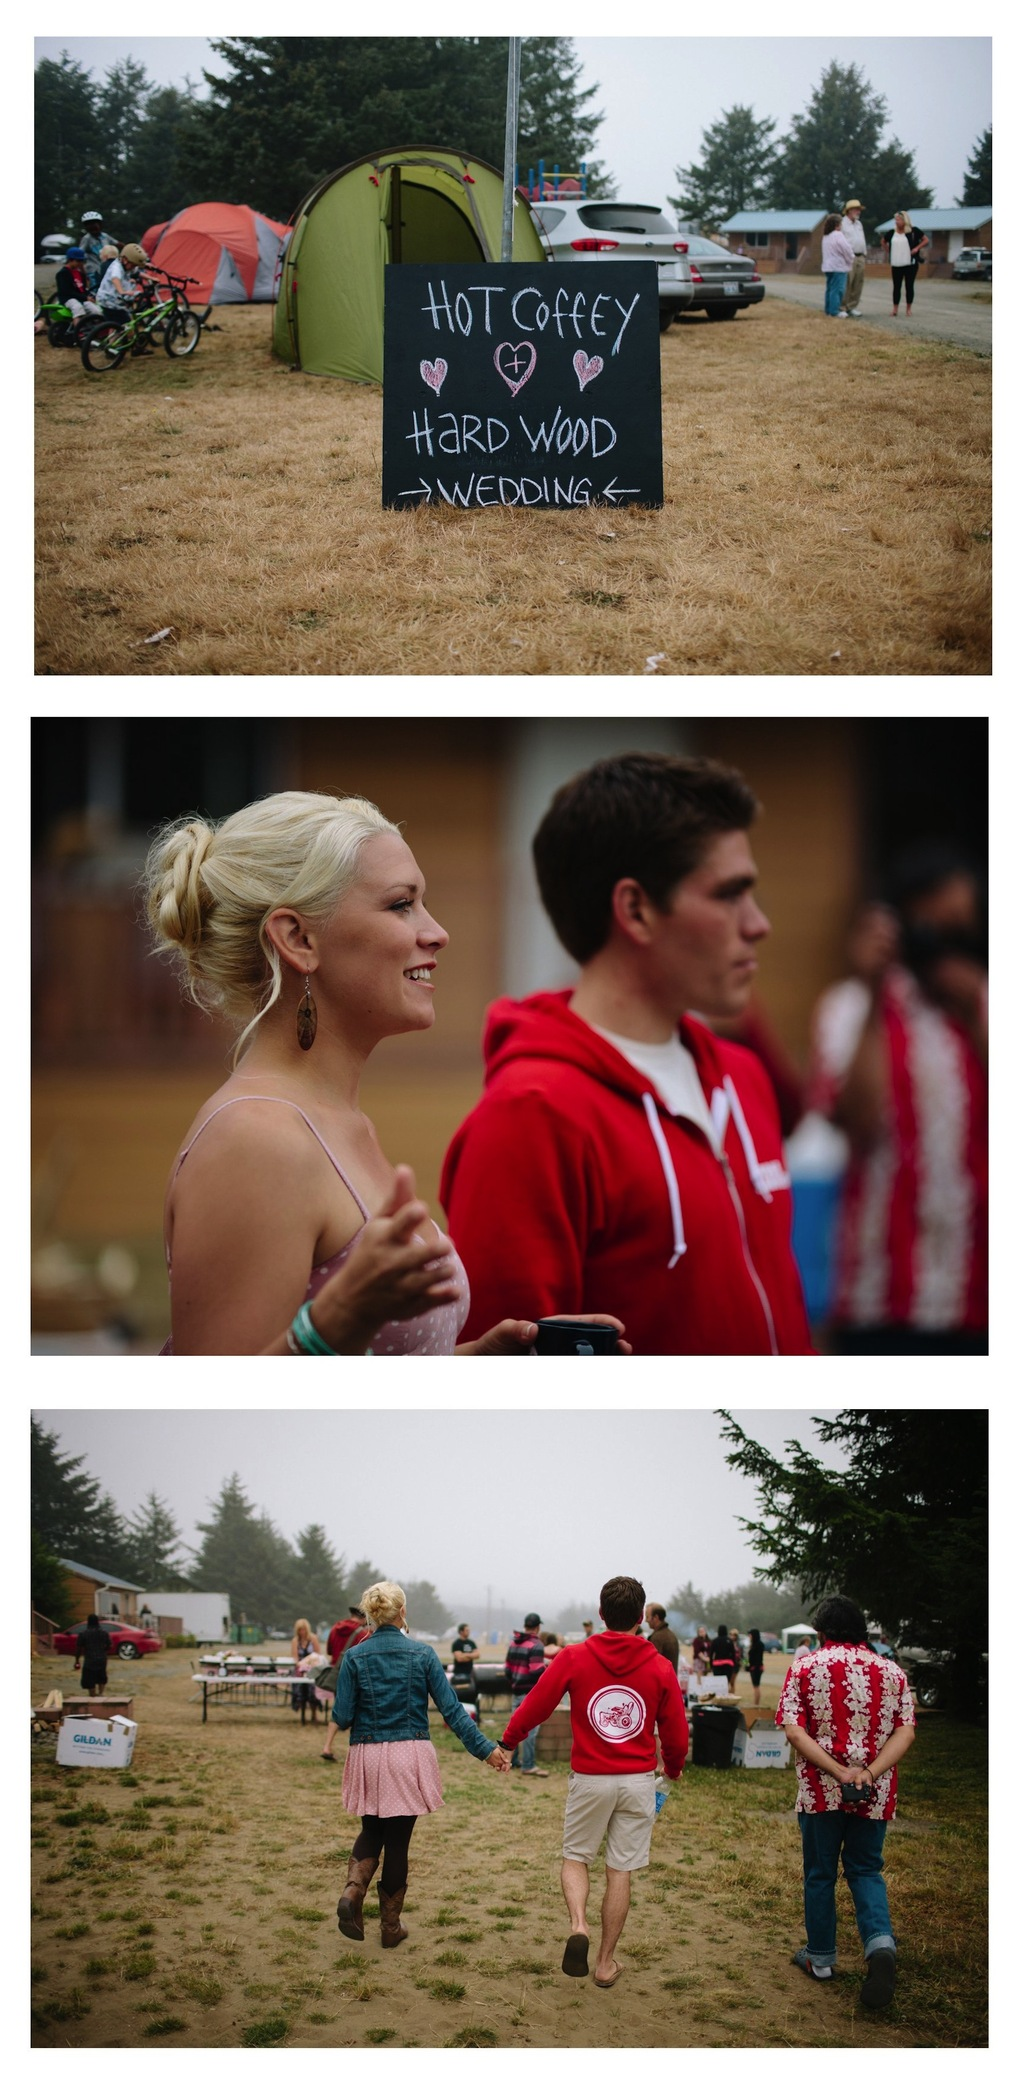 Coffey-wood-beach-real-wedding-linhbergh-photography-bride-groom-greeting-pre-ceremony.full